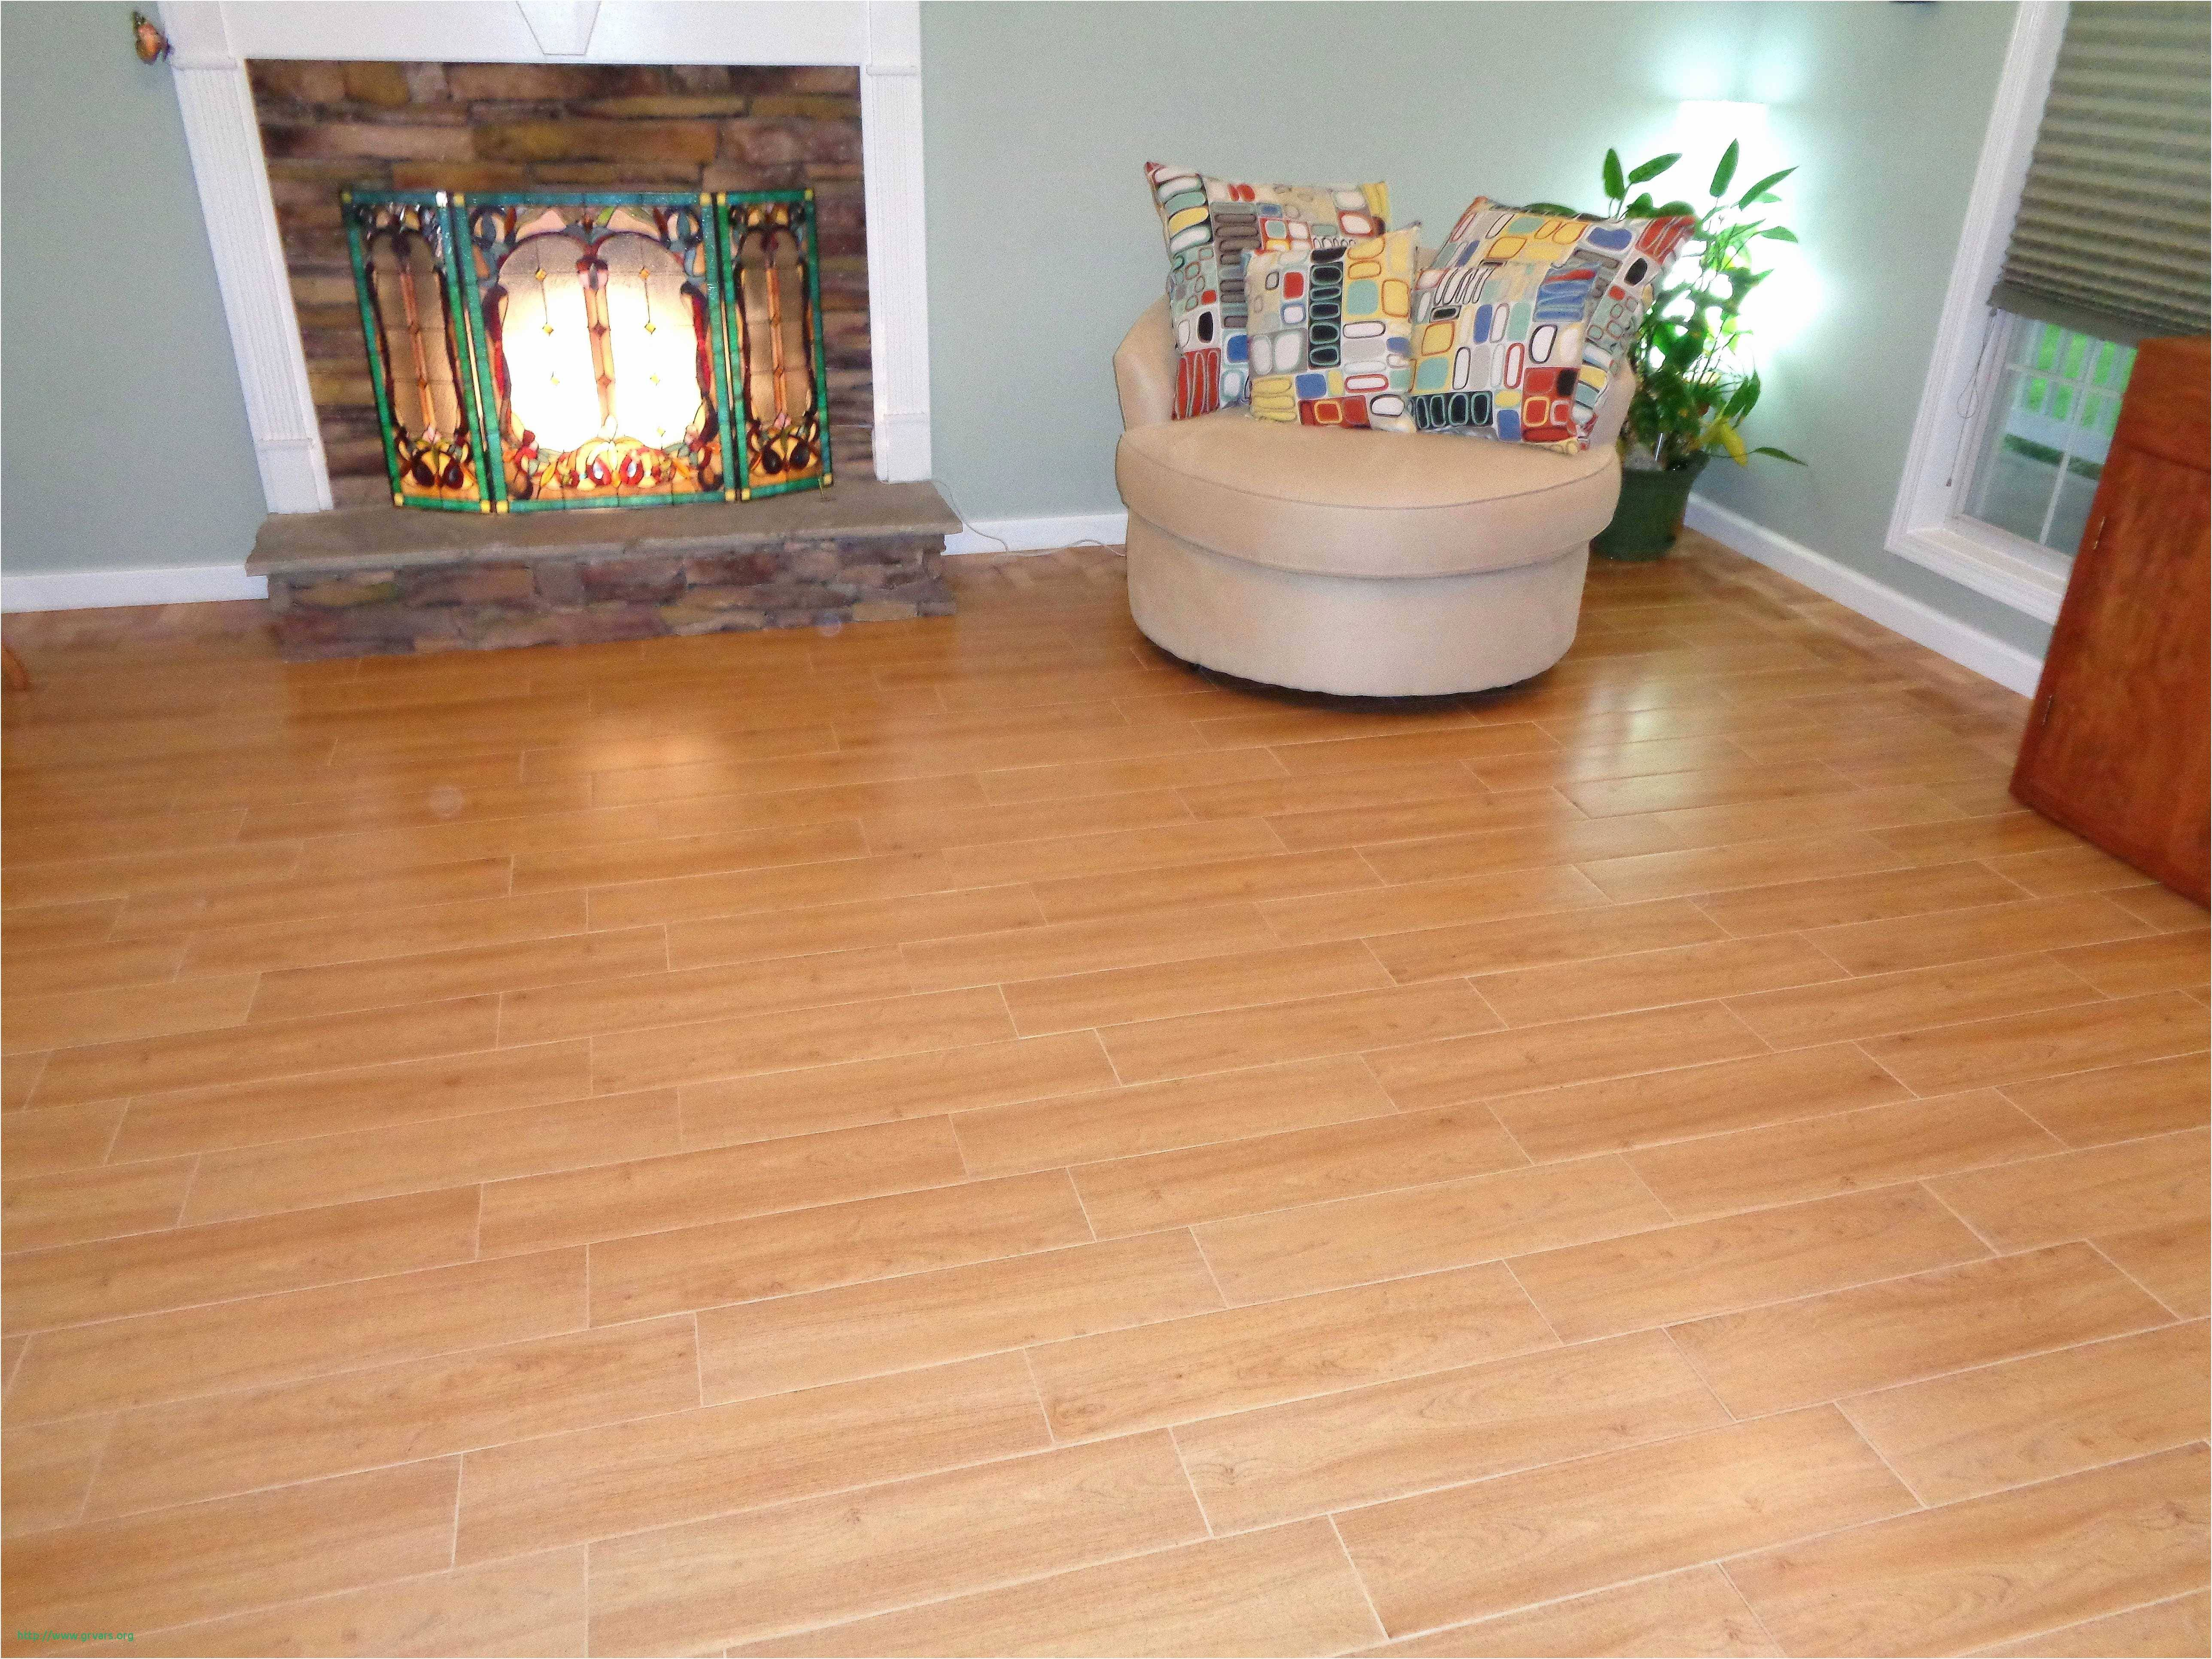 hardwood flooring sale of 20 impressionnant cheapest place to hardwood flooring ideas blog in cheapest place to hardwood flooring inspirant laminated wooden flooring prices guide to